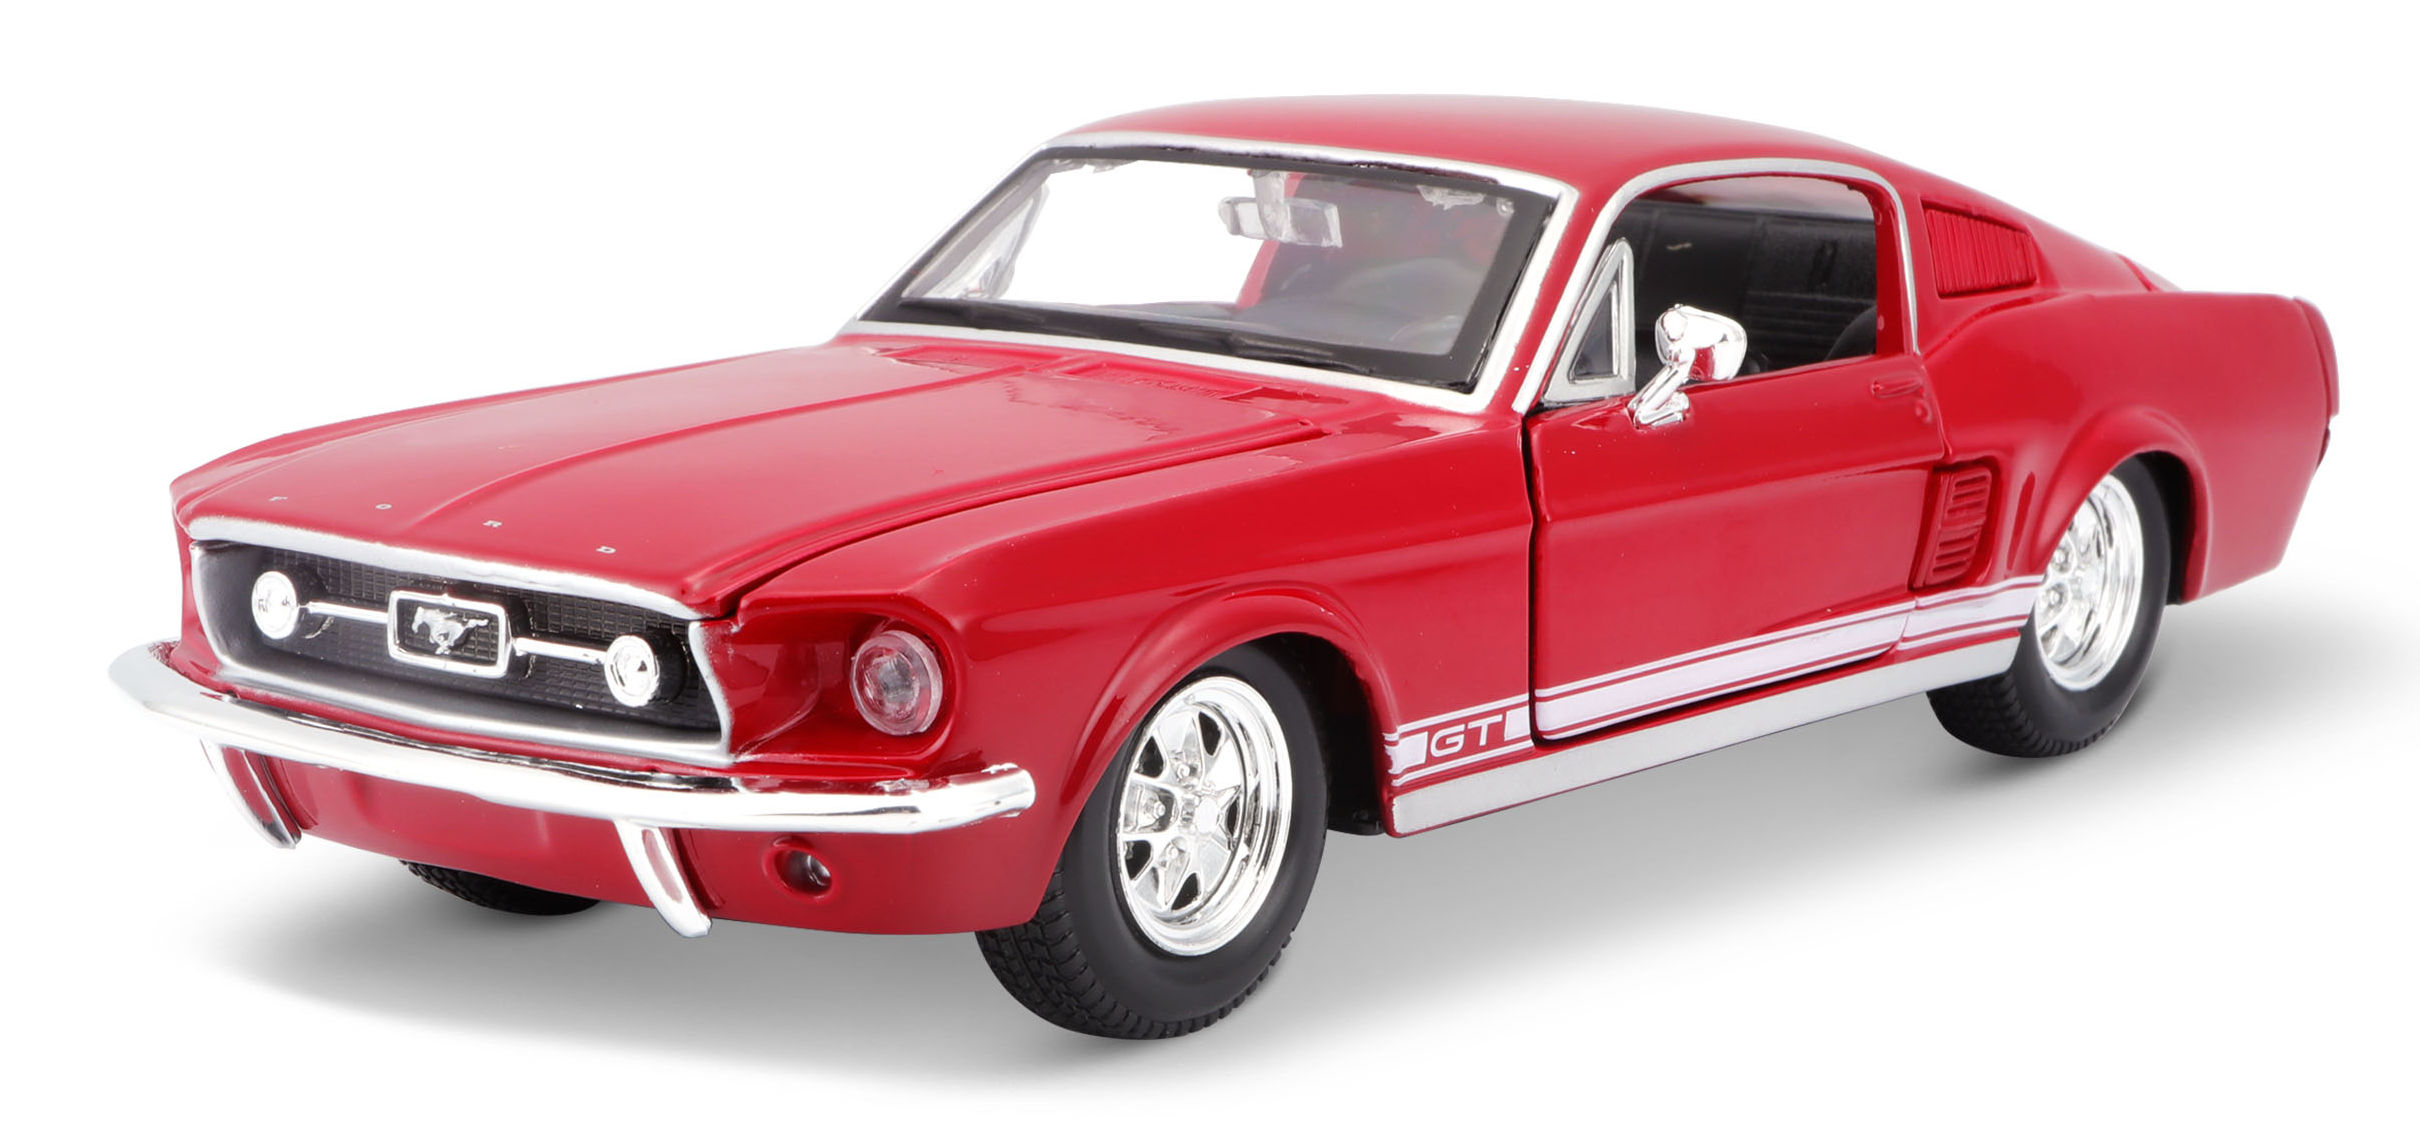 31260R - Maisto 1967 Ford Mustang GT